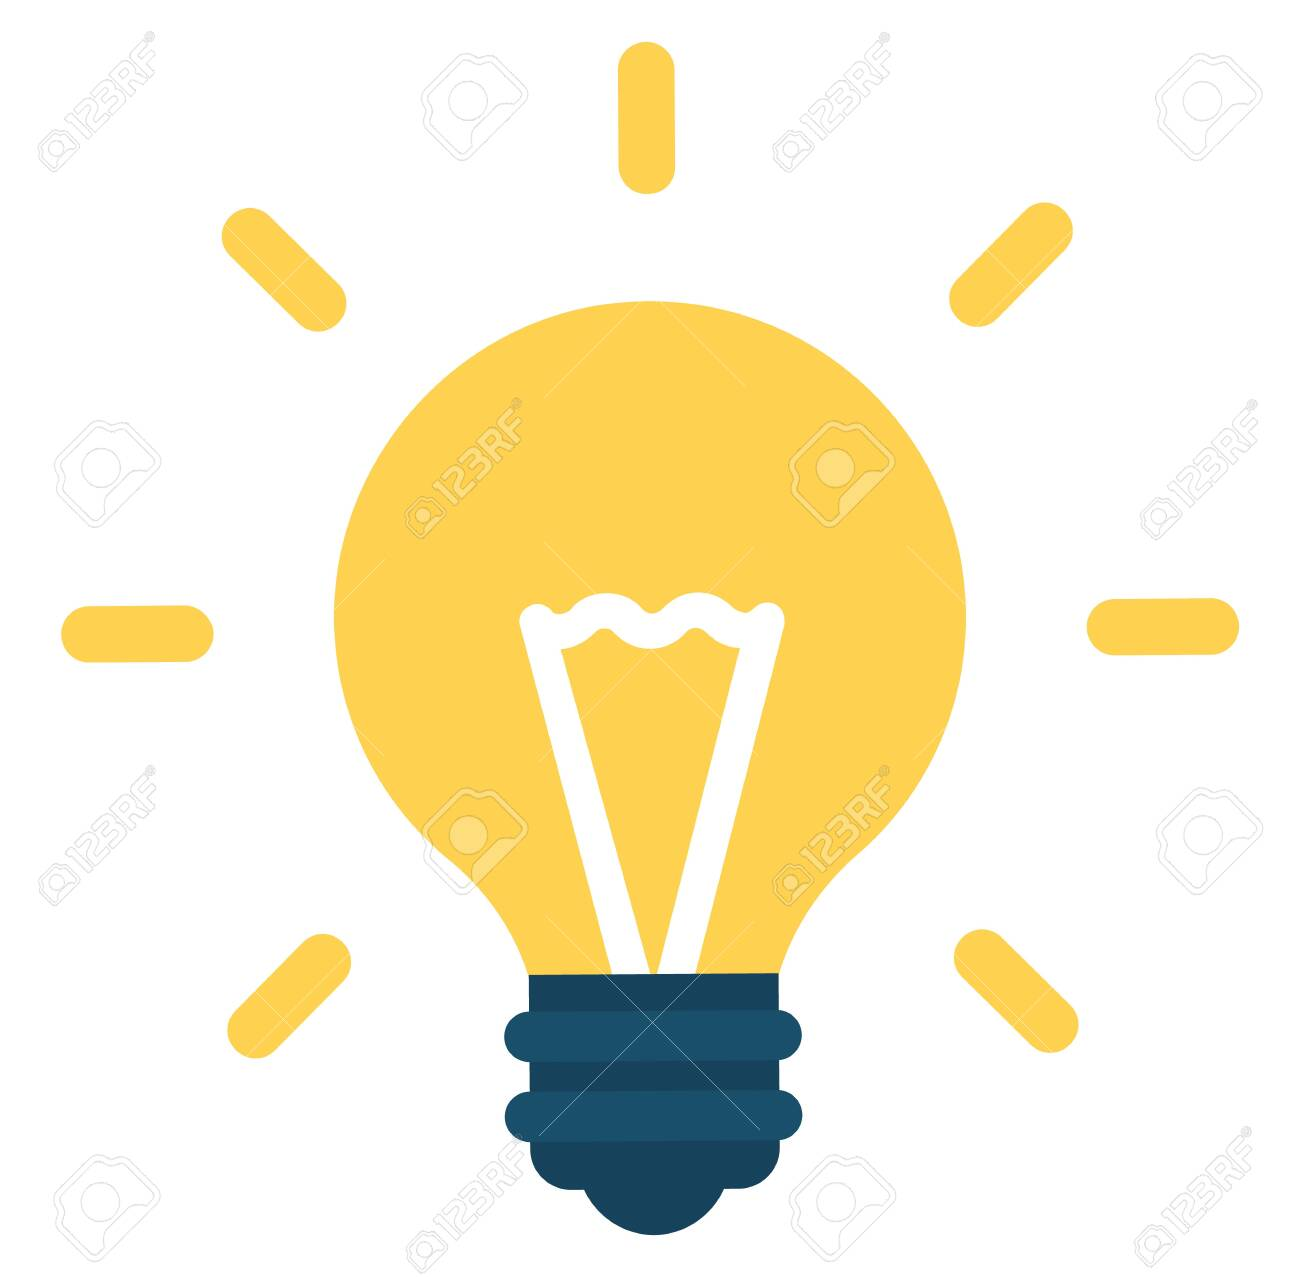 Light bulb icon vector on white background color. Yellow lightbulb solution idea and creativity symbol. Vector illustration for graphic and web design in flat cartoon style - 134063466